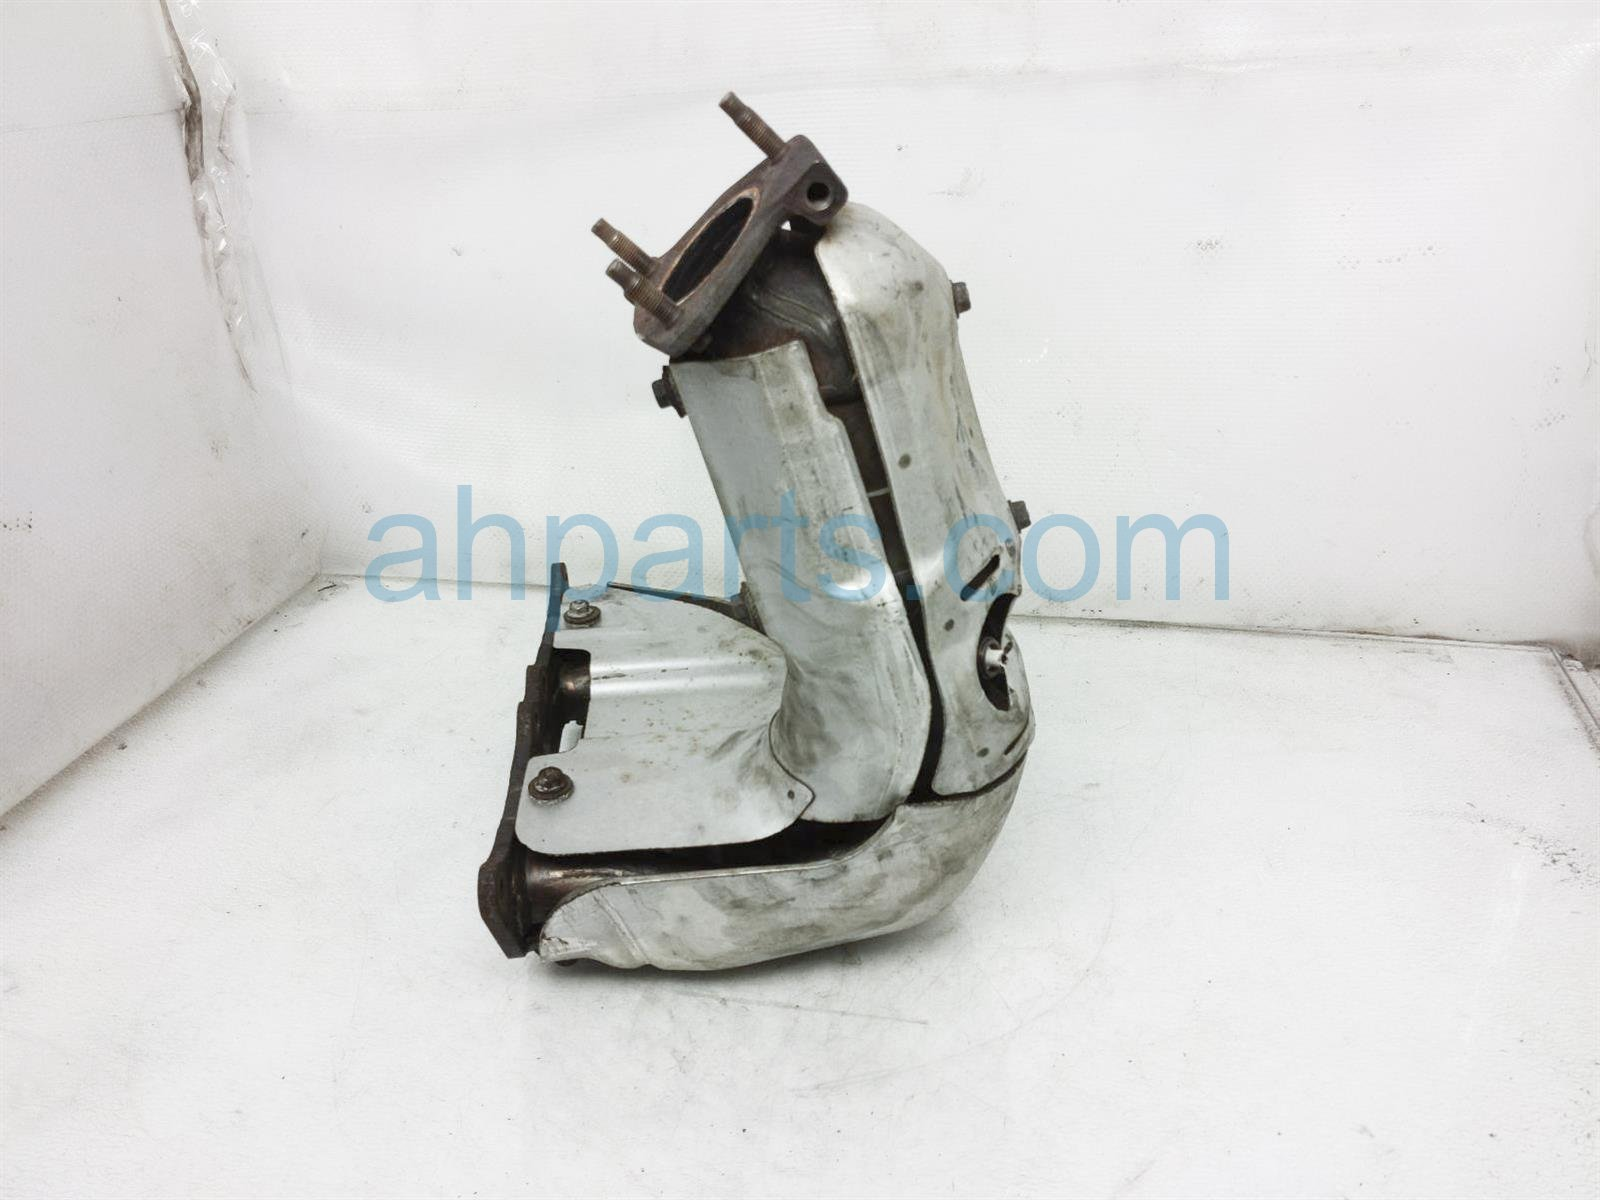 2001 Toyota Camry Exhaust Manifold 17141 74200 Replacement